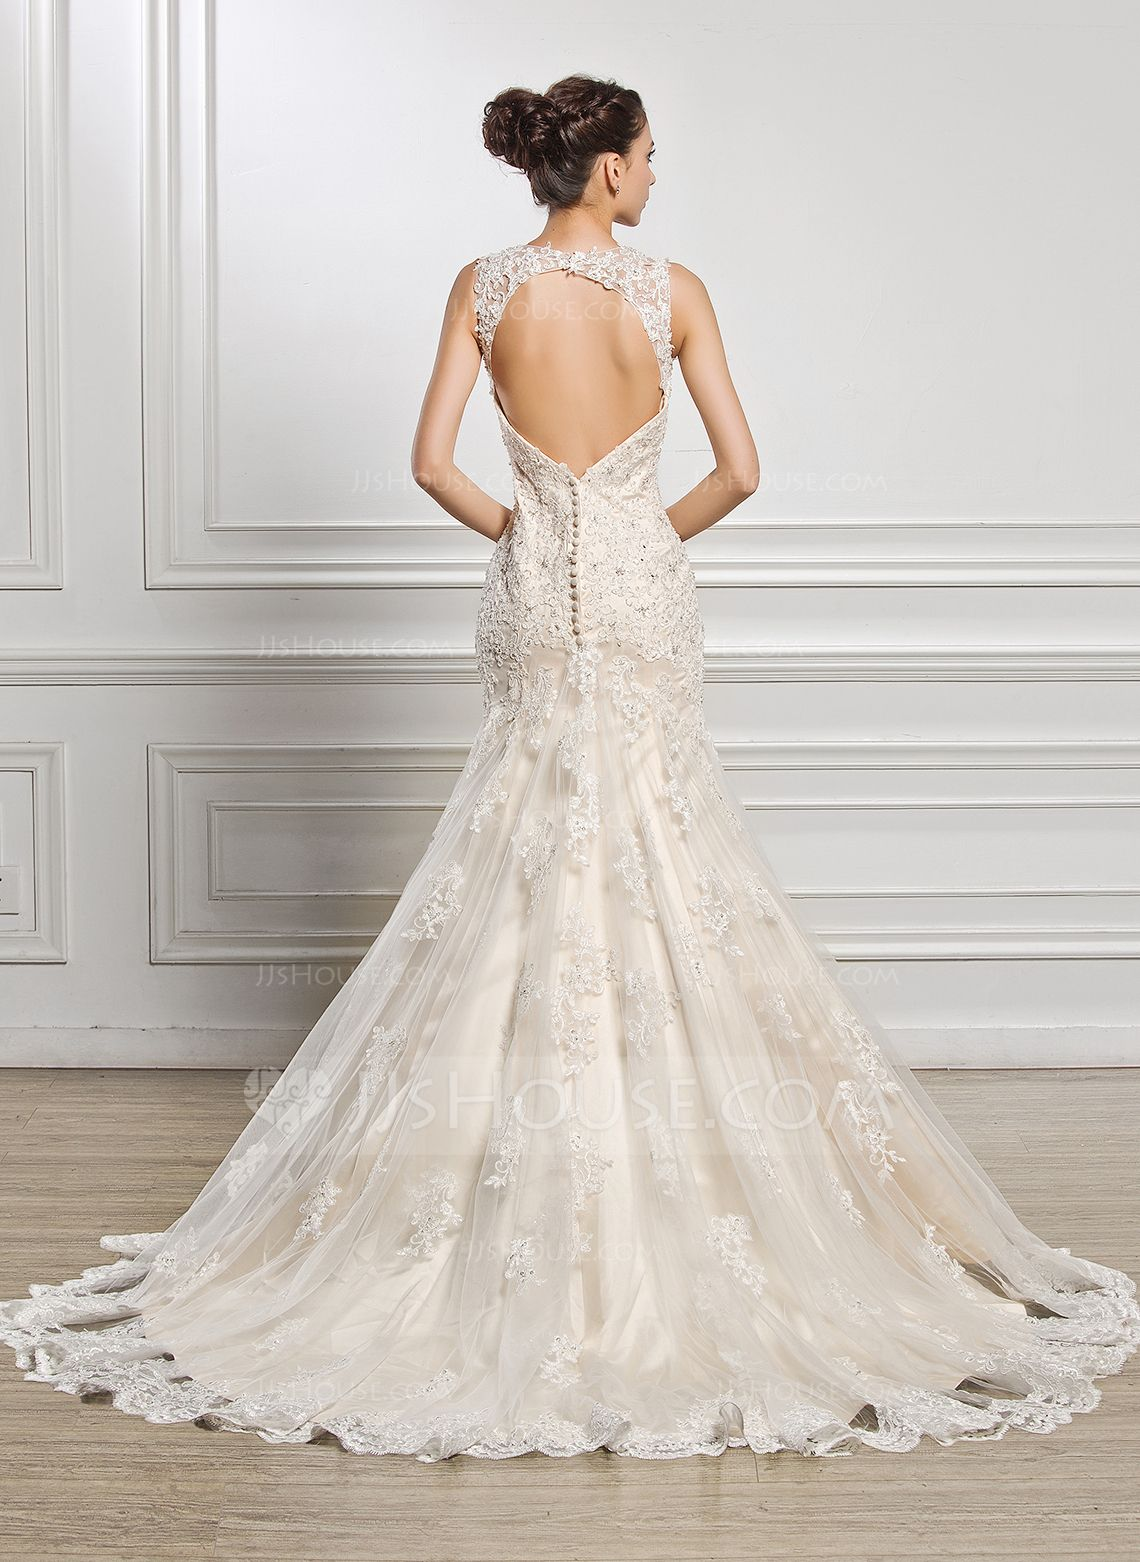 Us 442 00 Trumpet Mermaid Sweetheart Court Train Tulle Lace Wedding Dress With Beading Sequins Jj S House Wedding Dresses Lace Wedding Dresses Stunning Wedding Dresses [ 1562 x 1140 Pixel ]